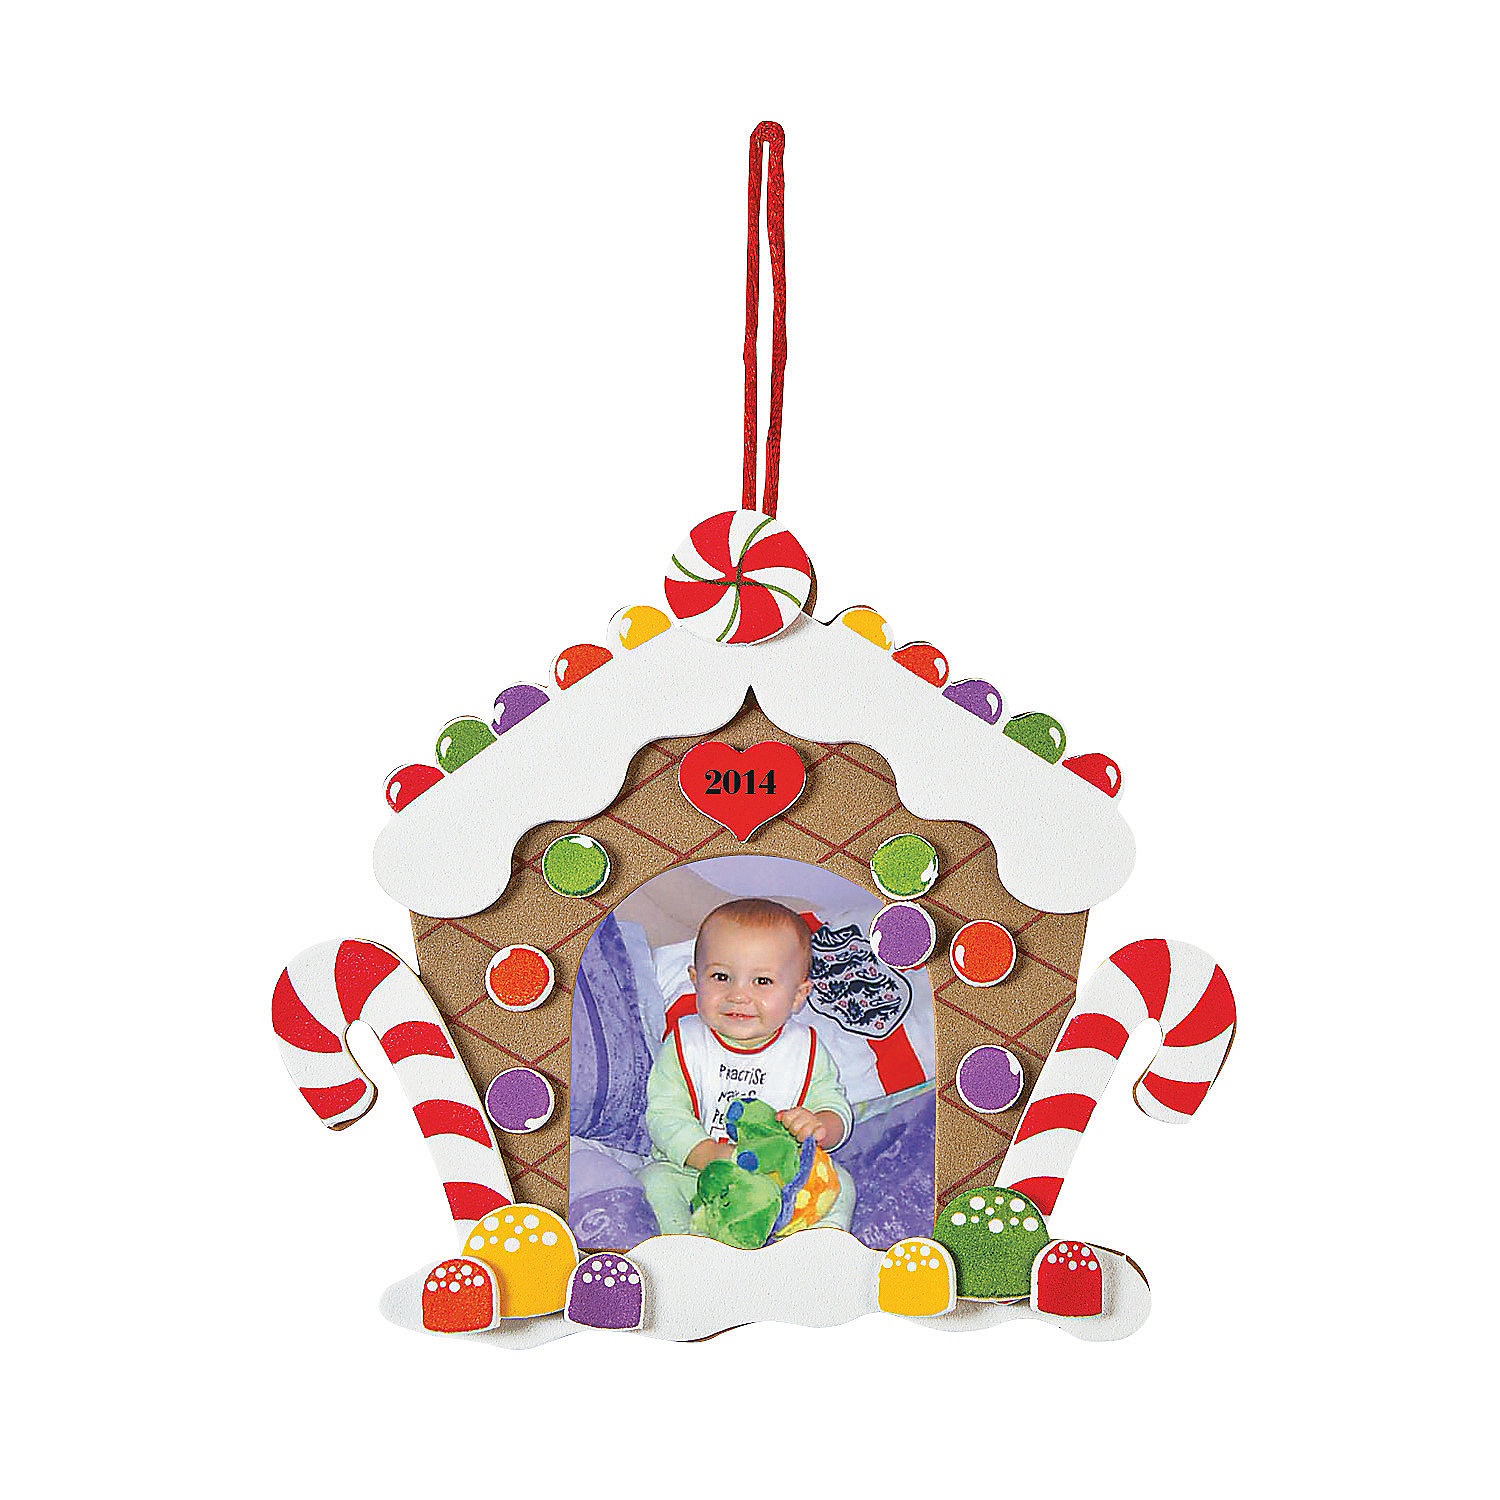 2013 gingerbread house picture frame christmas ornament for Photo frame ornament craft